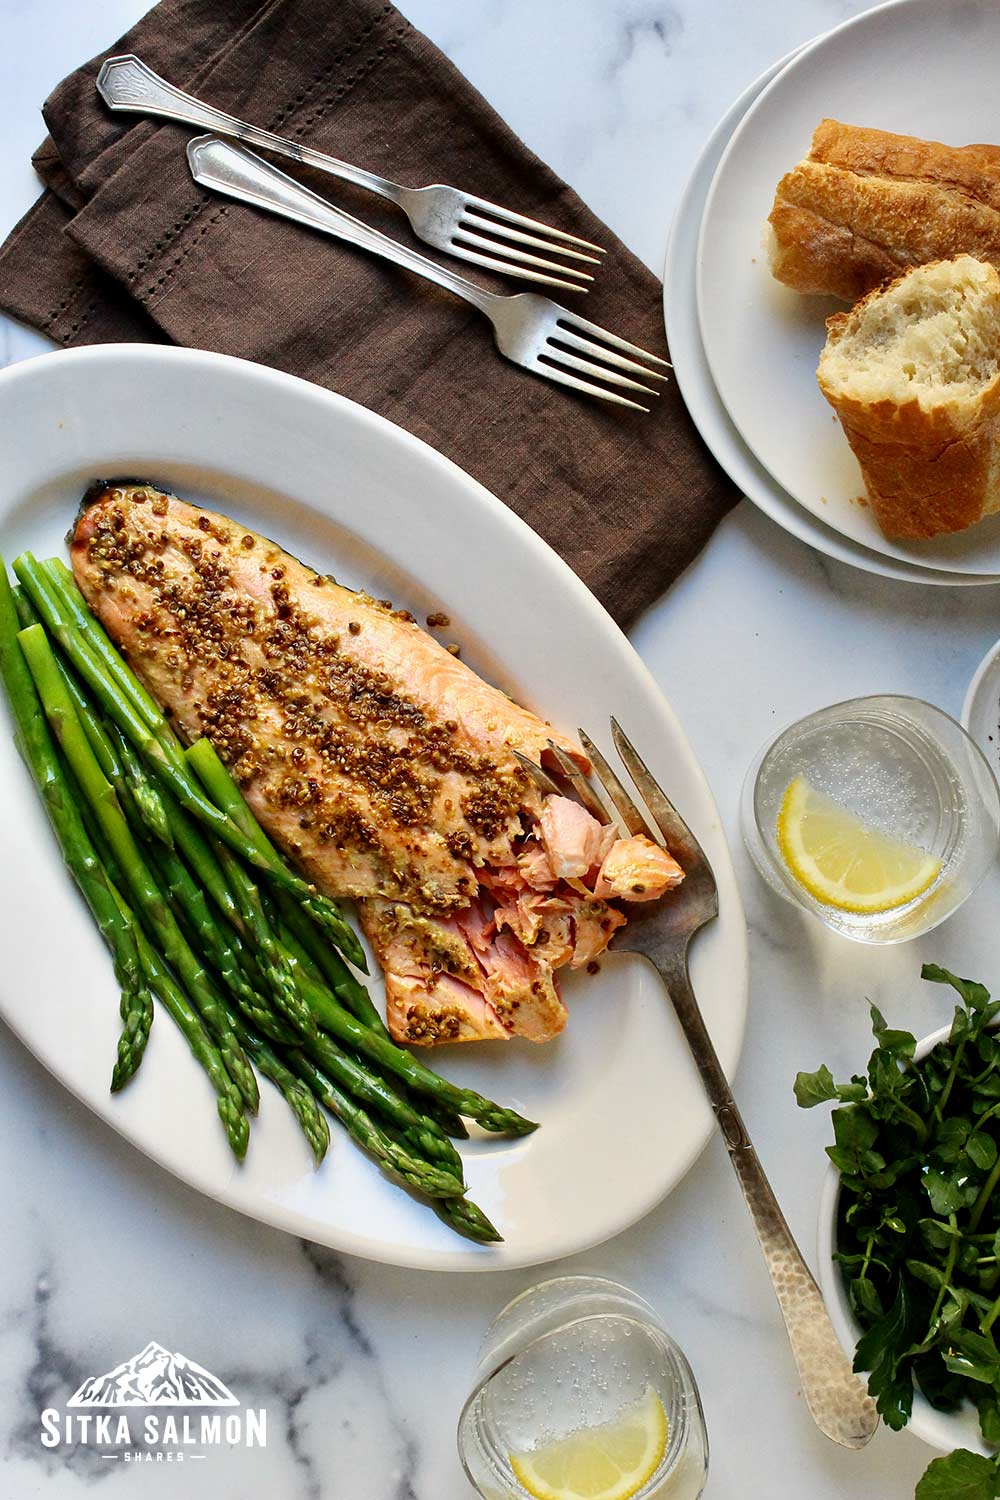 Spice-Crusted Salmon with Herb Salad Recipe   Sitka Salmon Shares